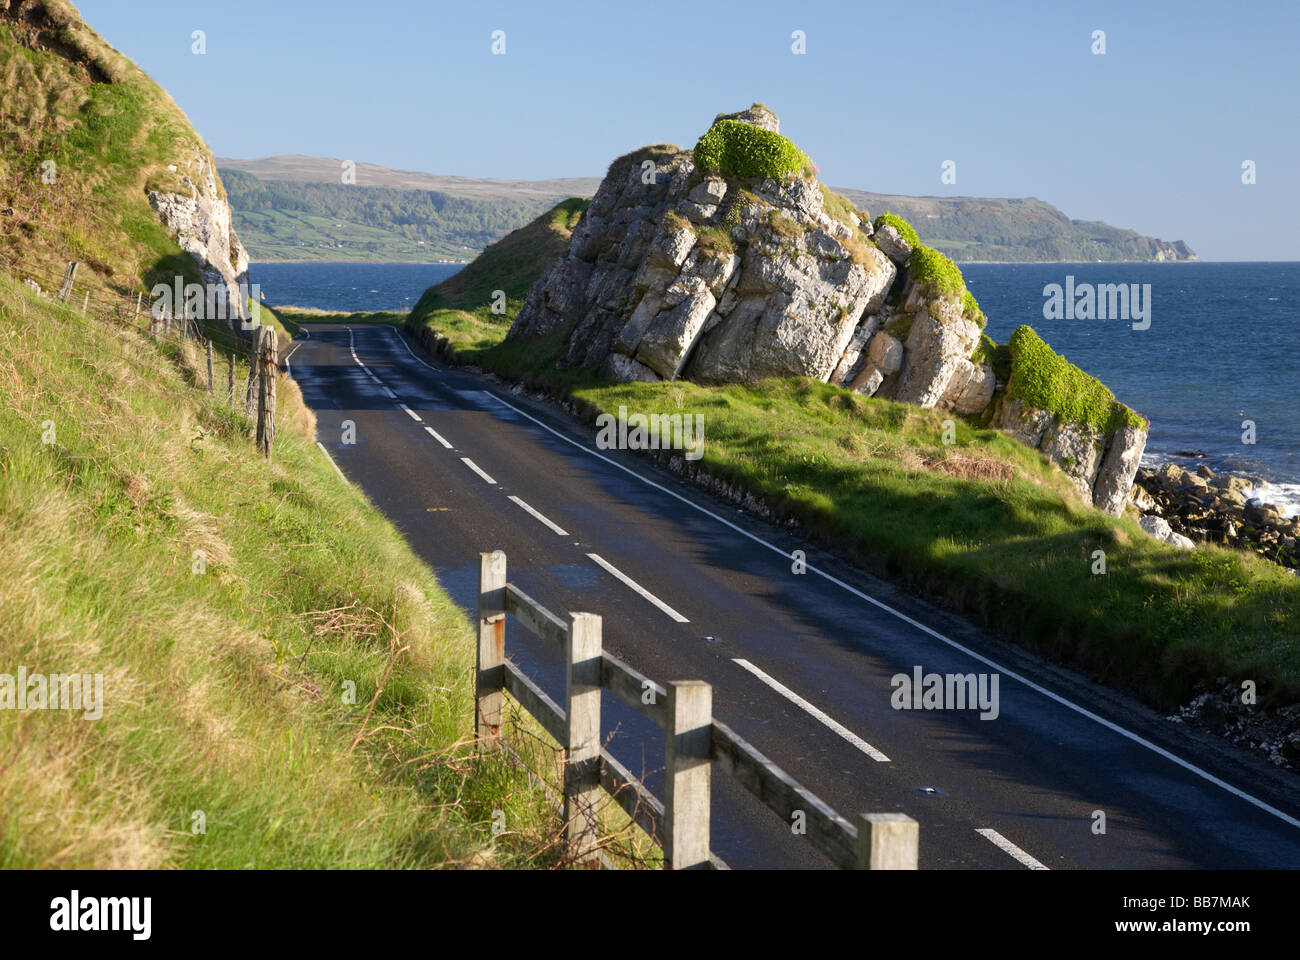 The A2 causeway coastal route coast road passes through limestone rock formations County Antrim Northern Ireland - Stock Image